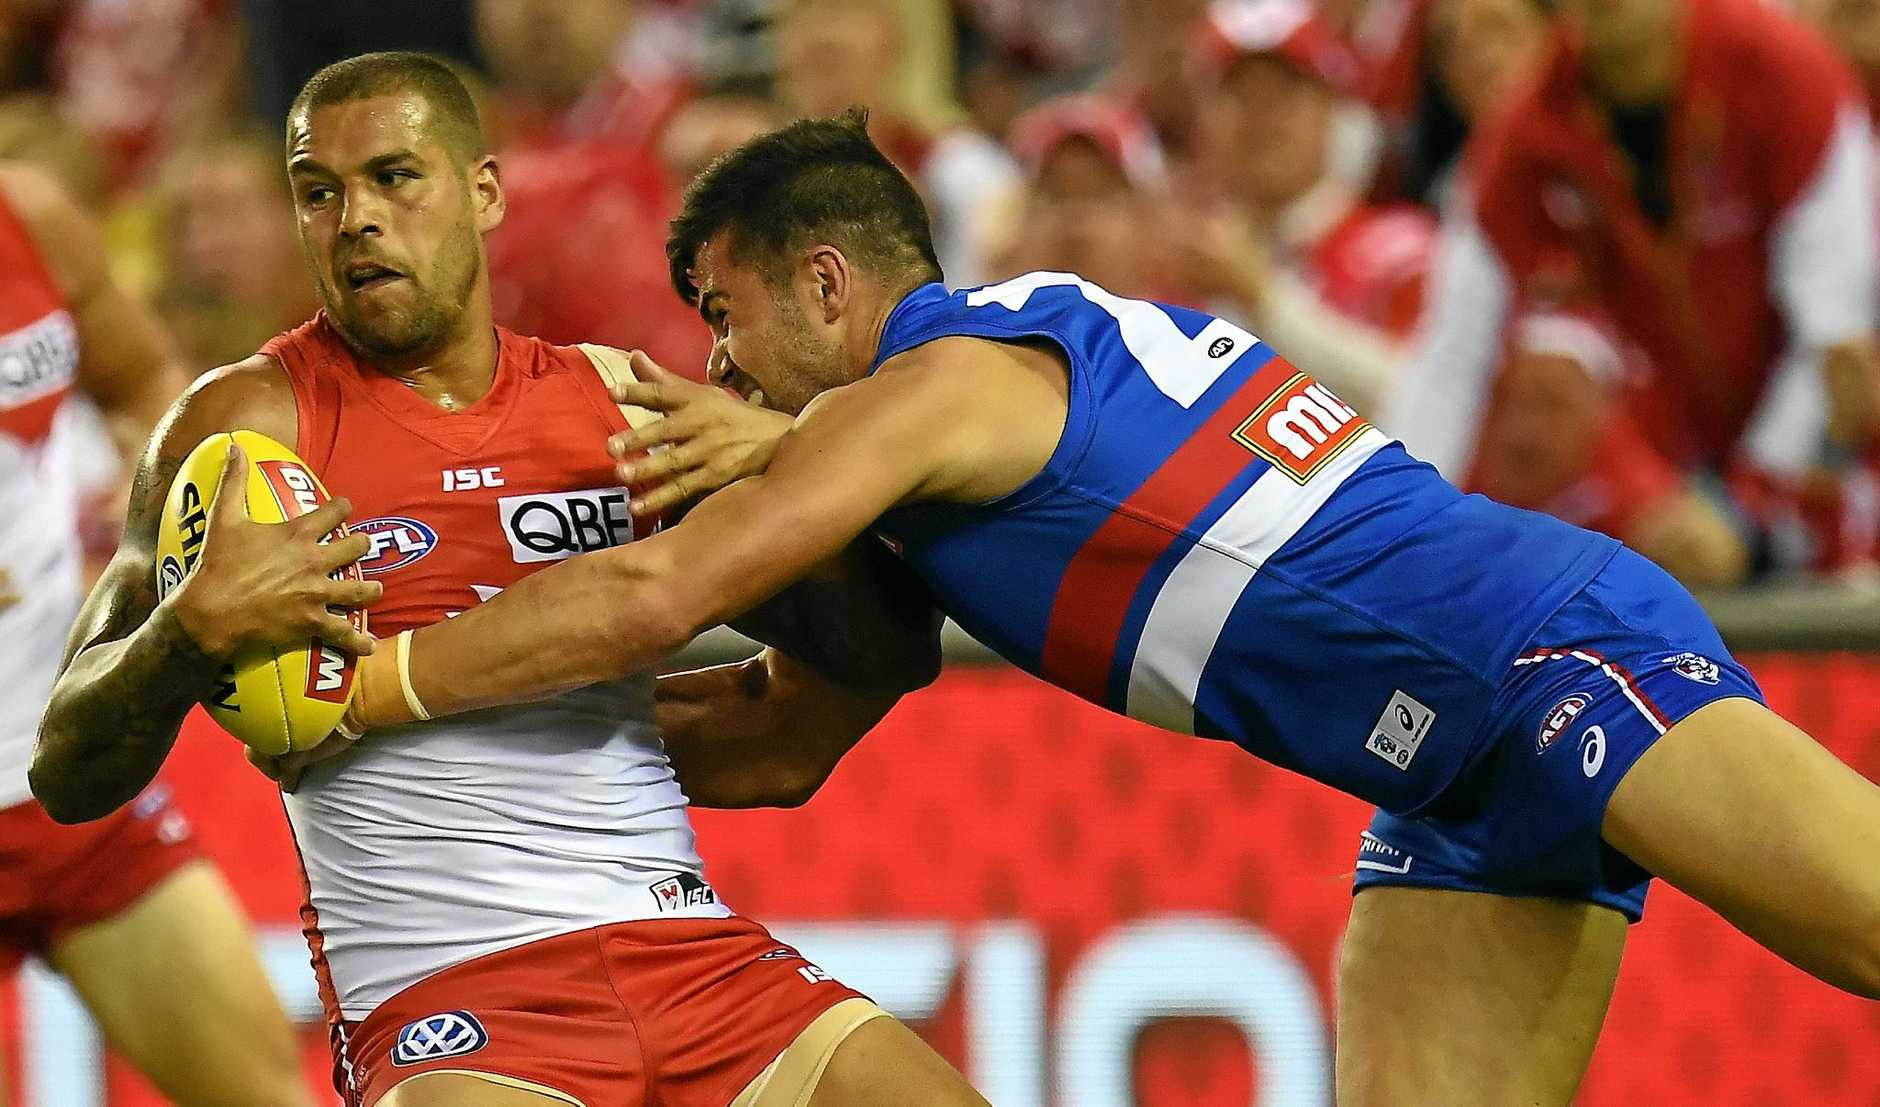 Lance Franklin of the Swans (left) is tackled by Marcus Adams of the Western Bulldogs.